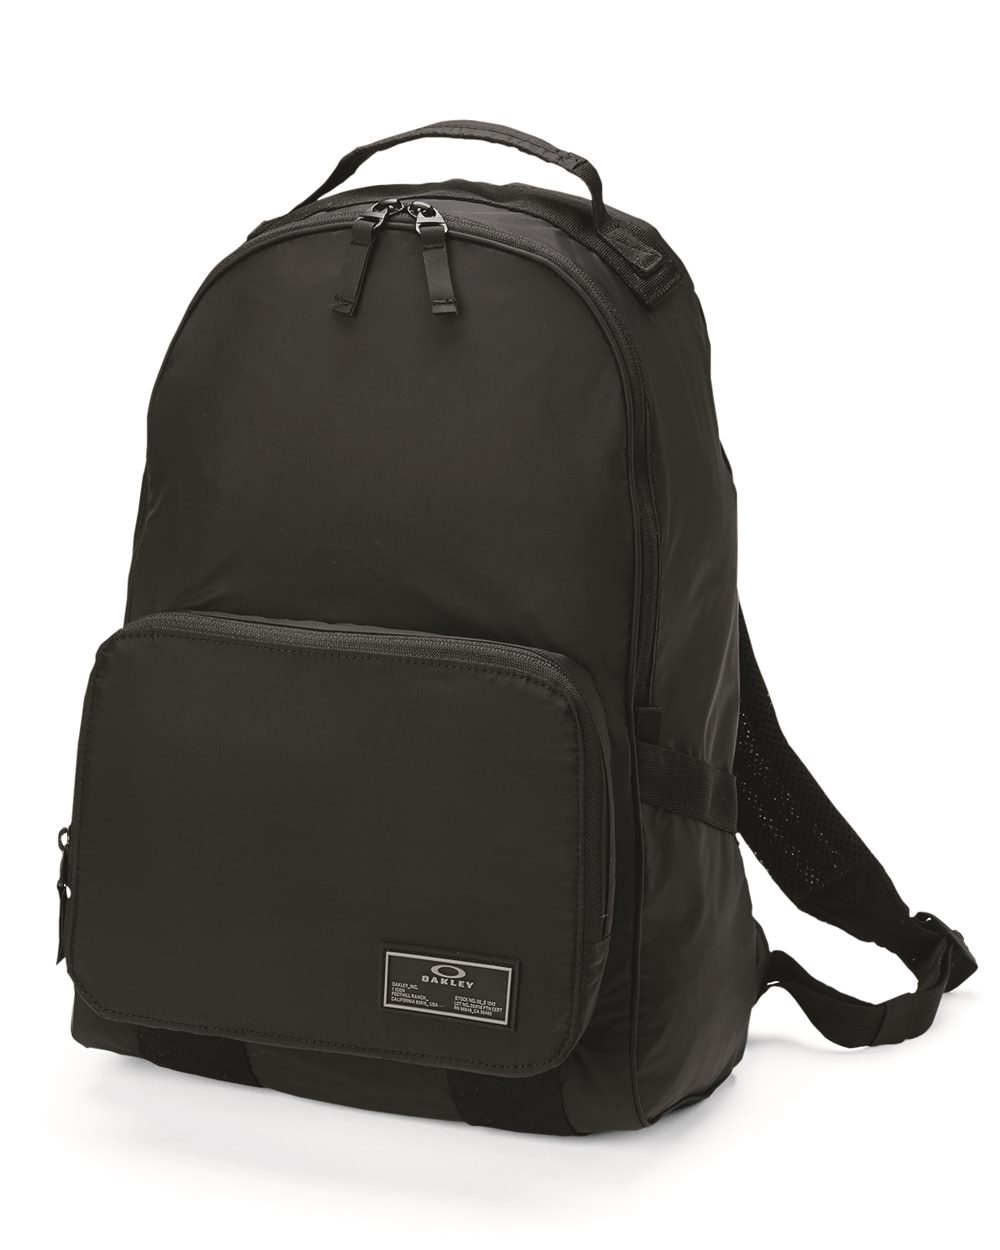 Oakley 921424ODM - 18L Packable Backpack